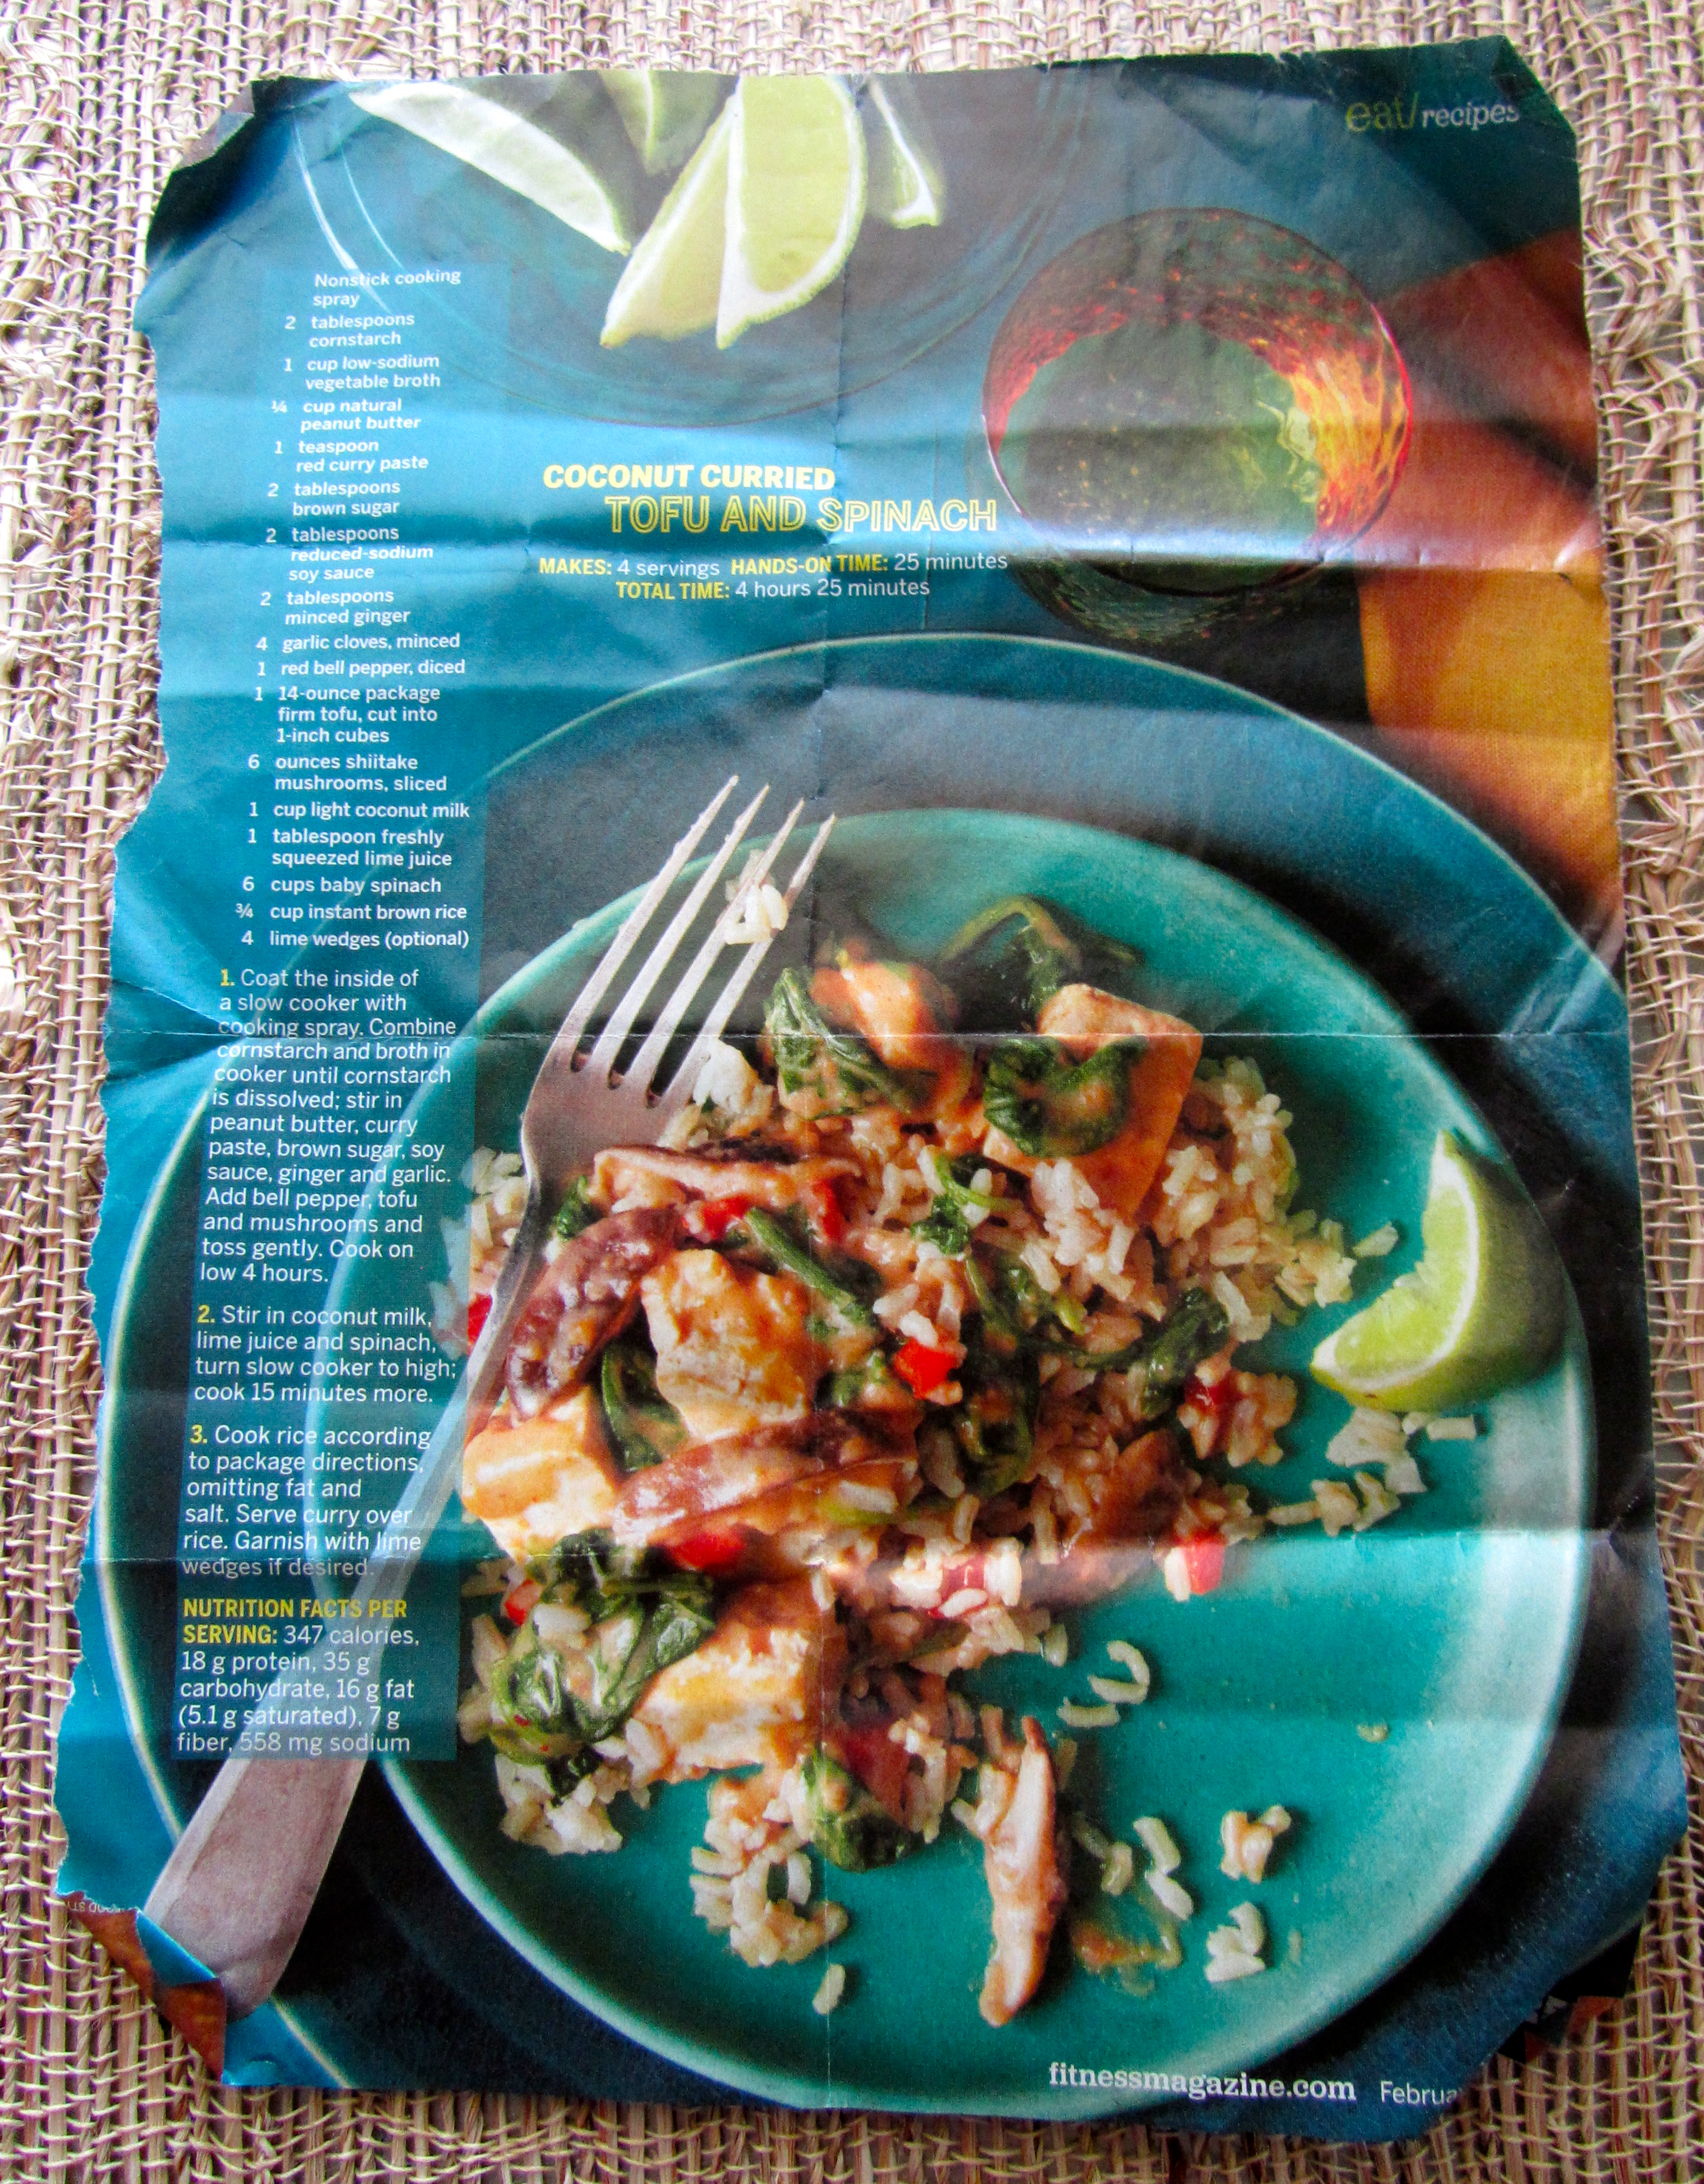 Coconut Curried Tofu and Spinach – Melanie daPonte